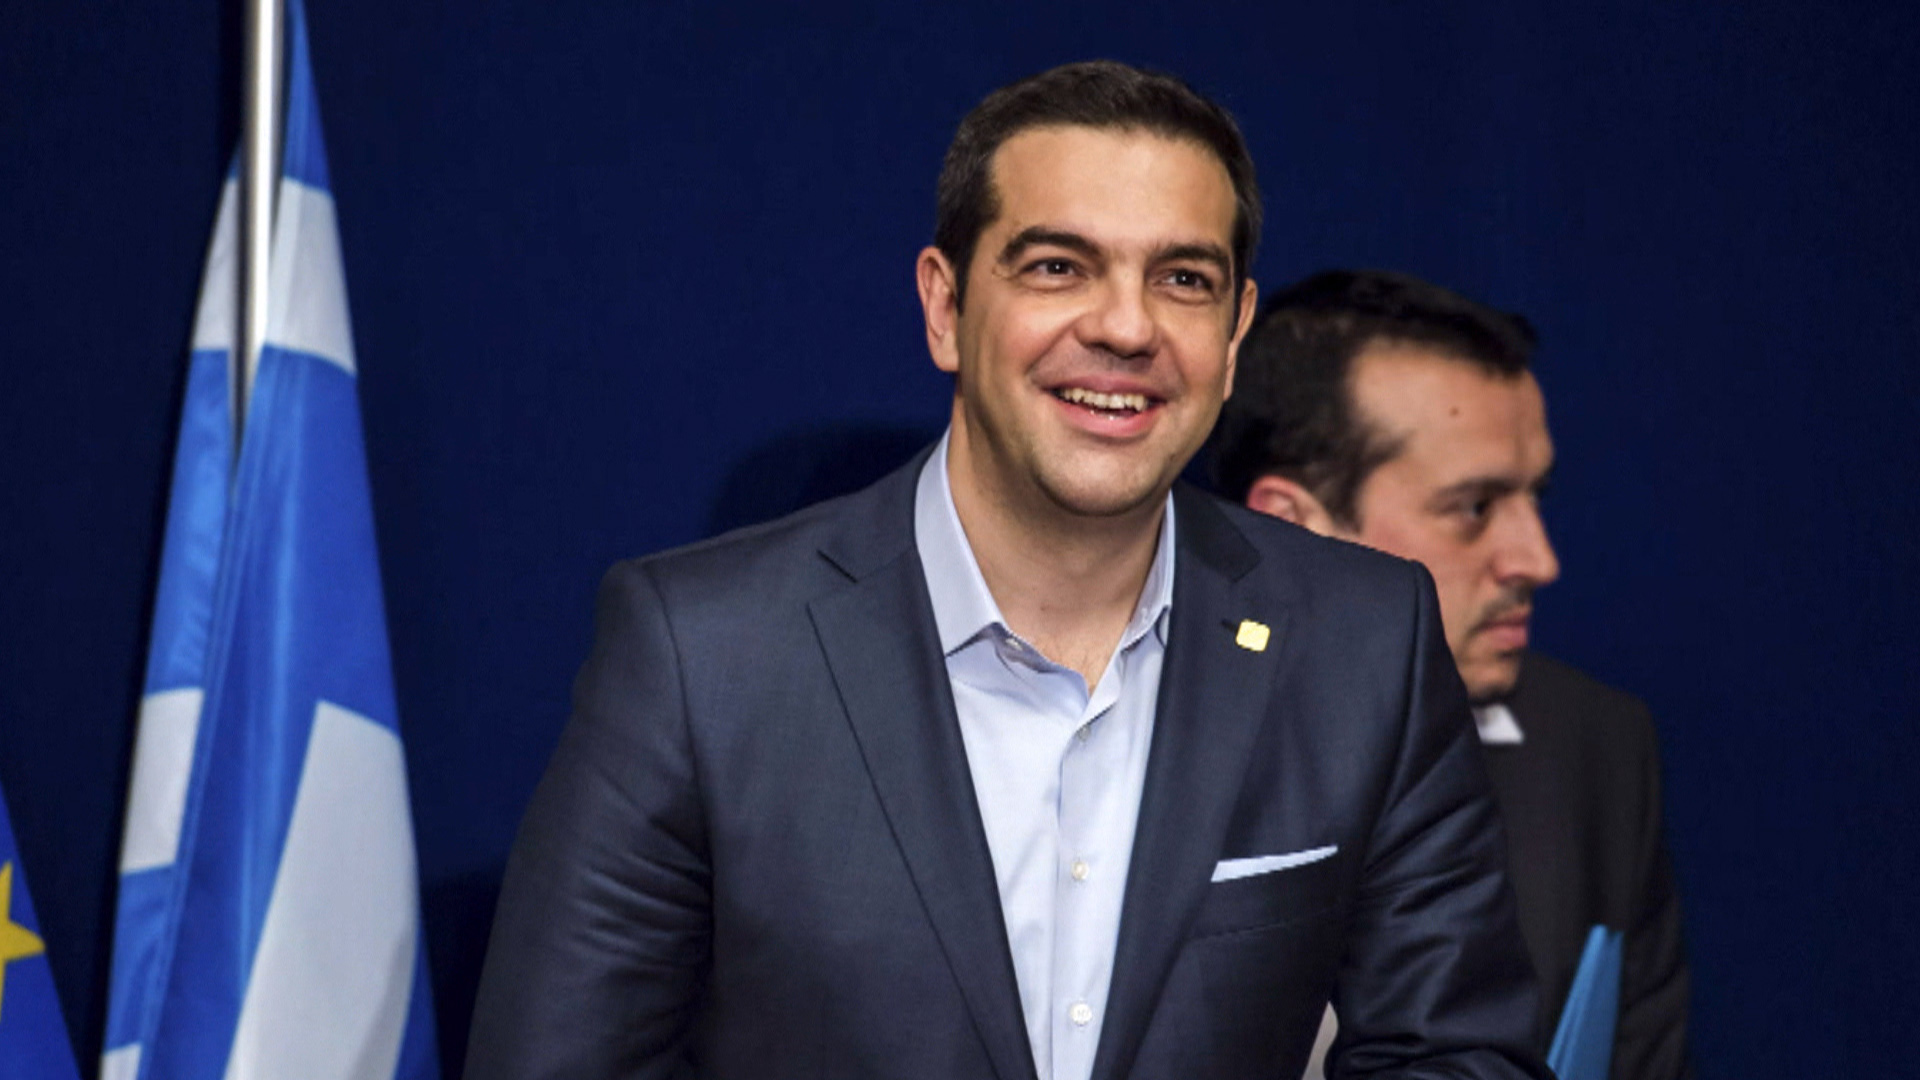 As the world turns: Greek tragedy?